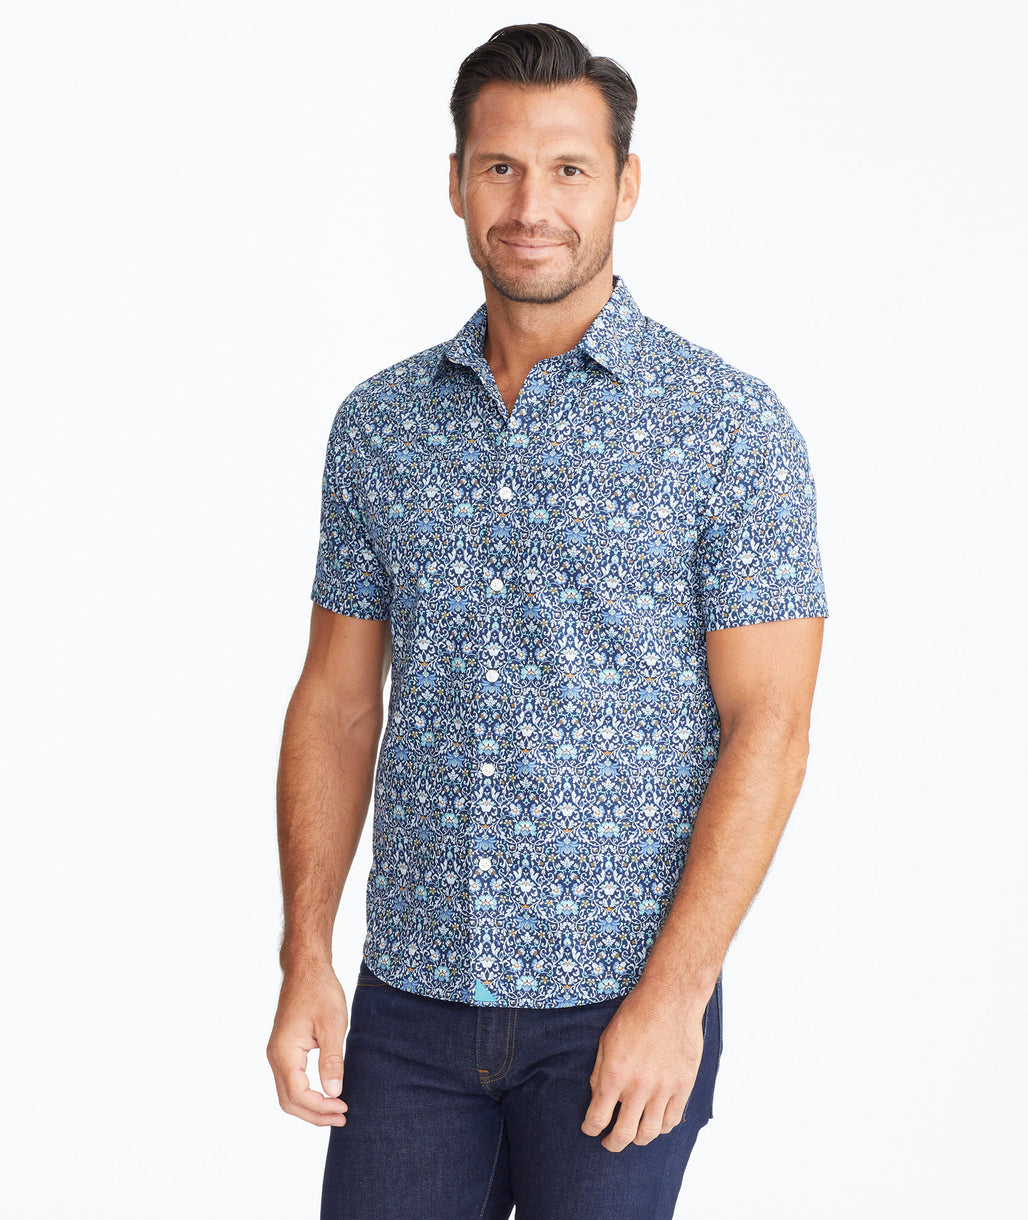 Model wearing a Navy Classic Cotton Short-Sleeve Alverdi Shirt